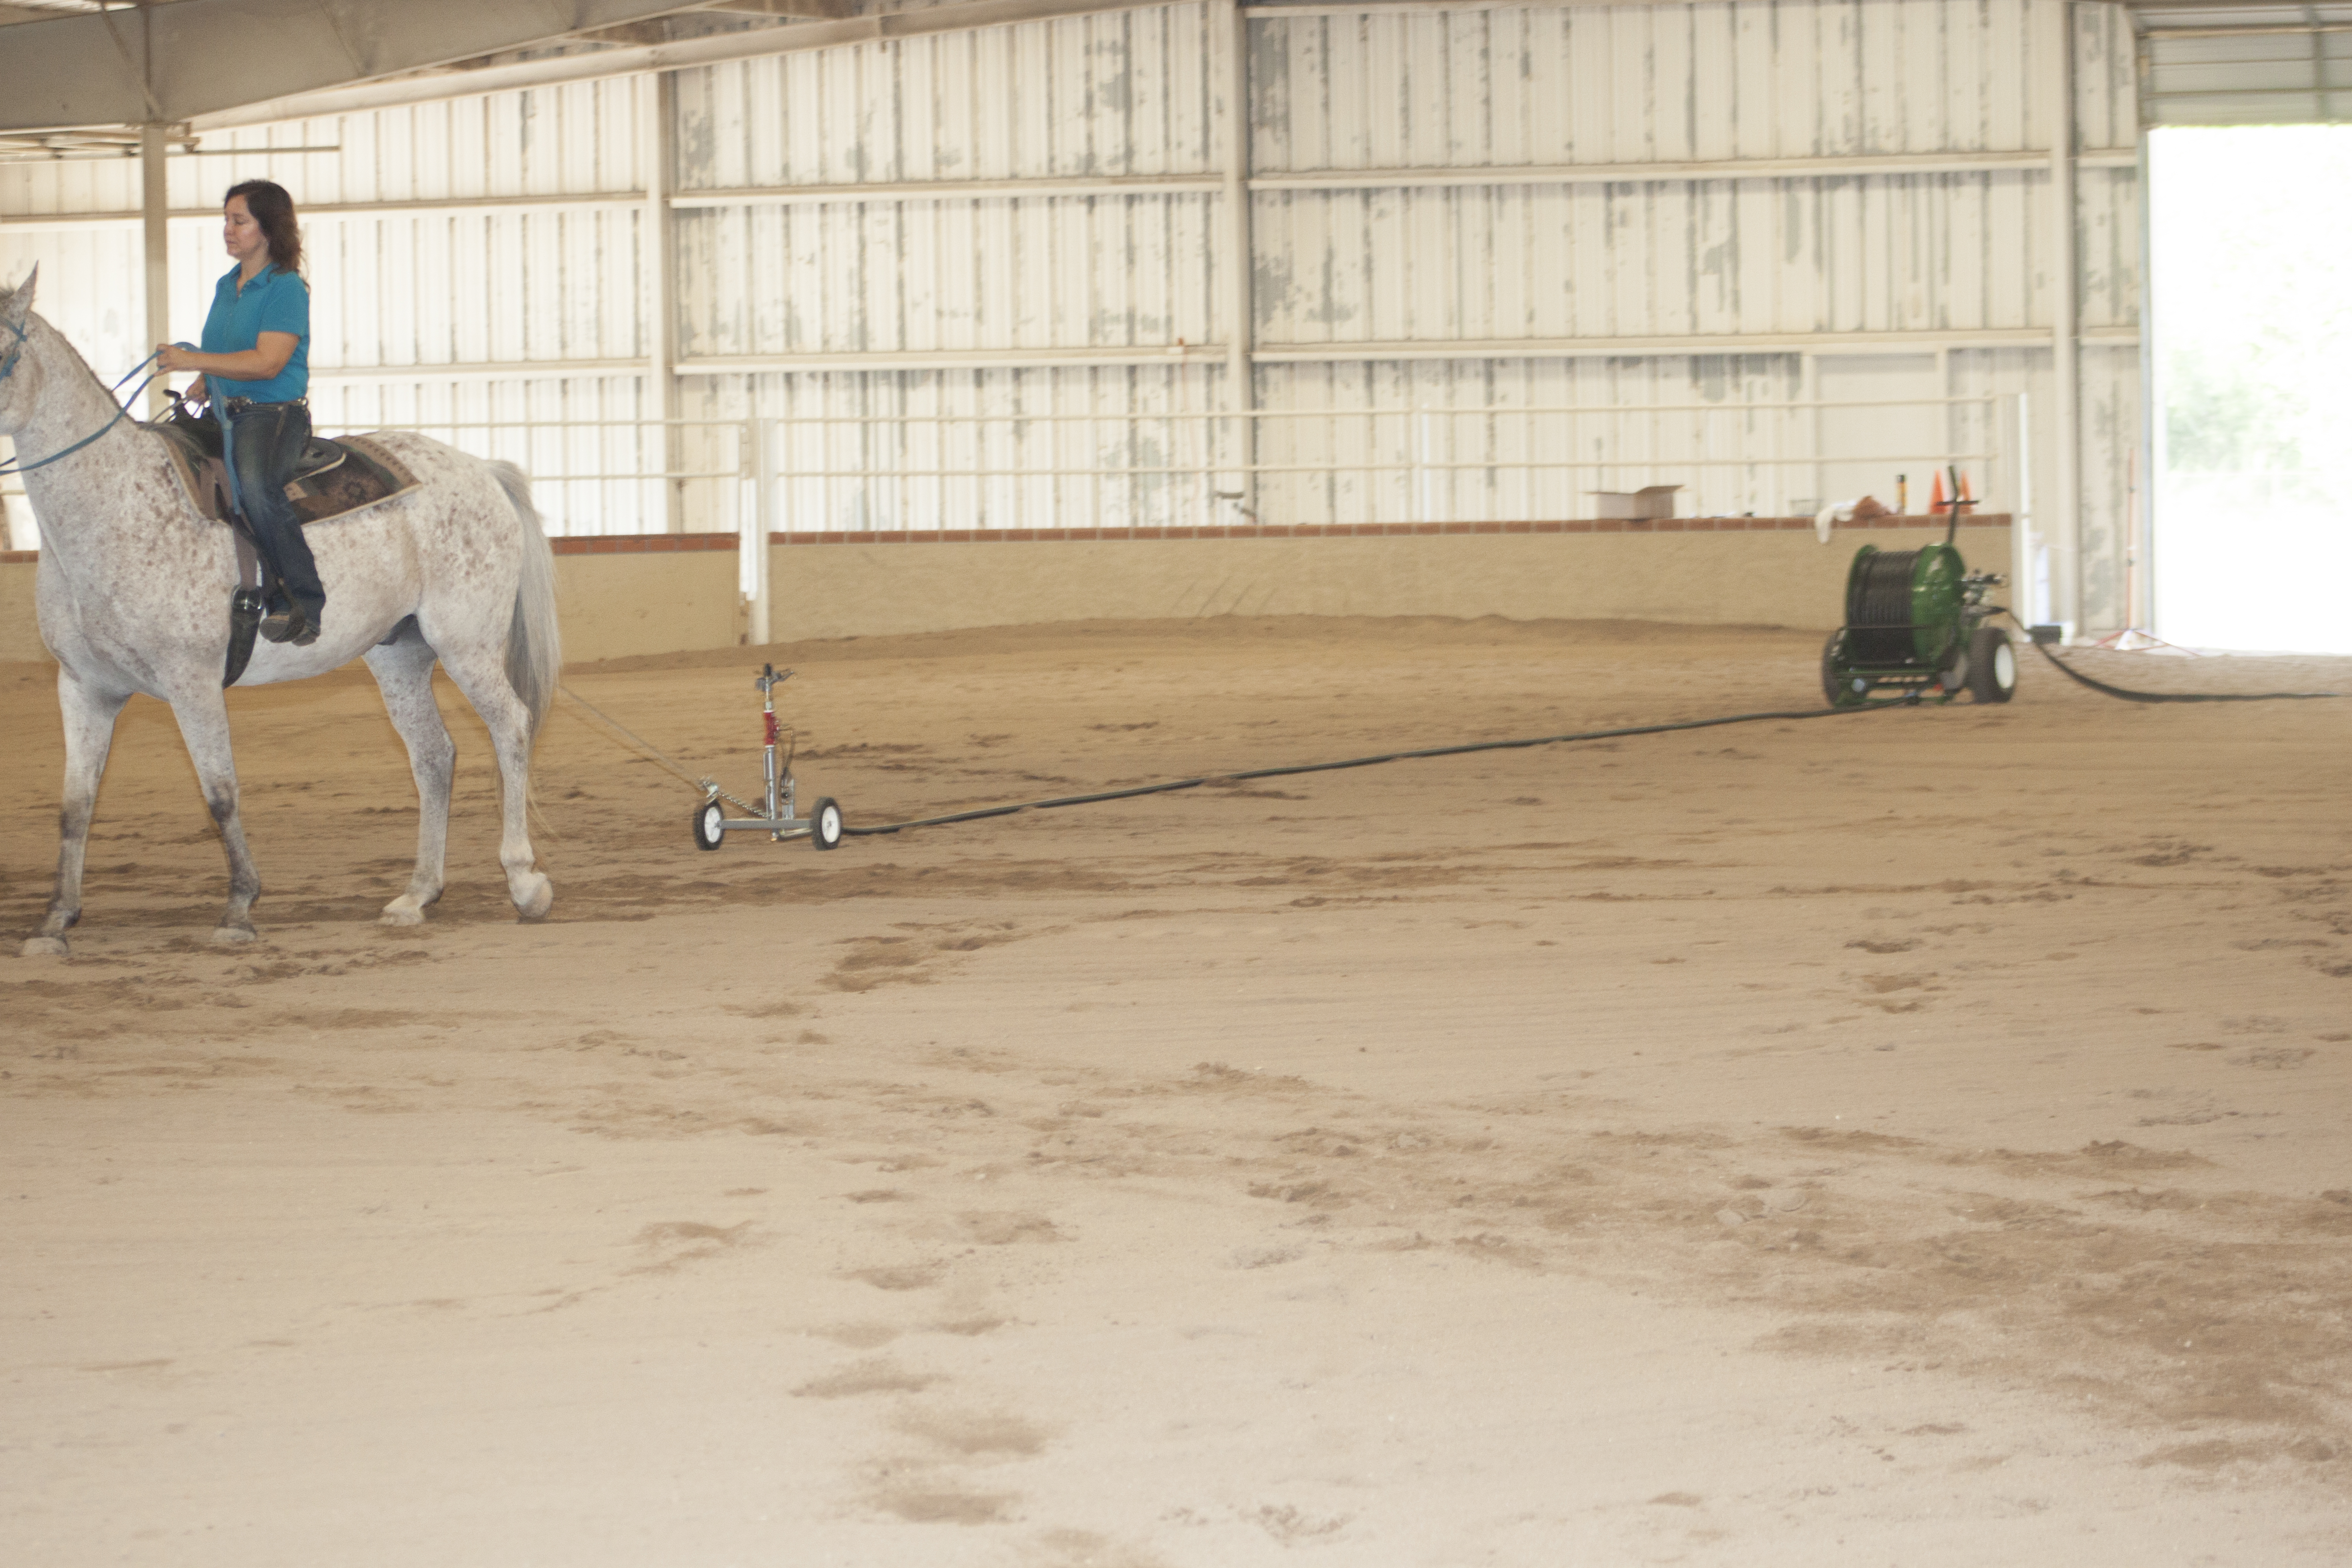 image of Kifco water-reel watering arenas, specifically horse arenas